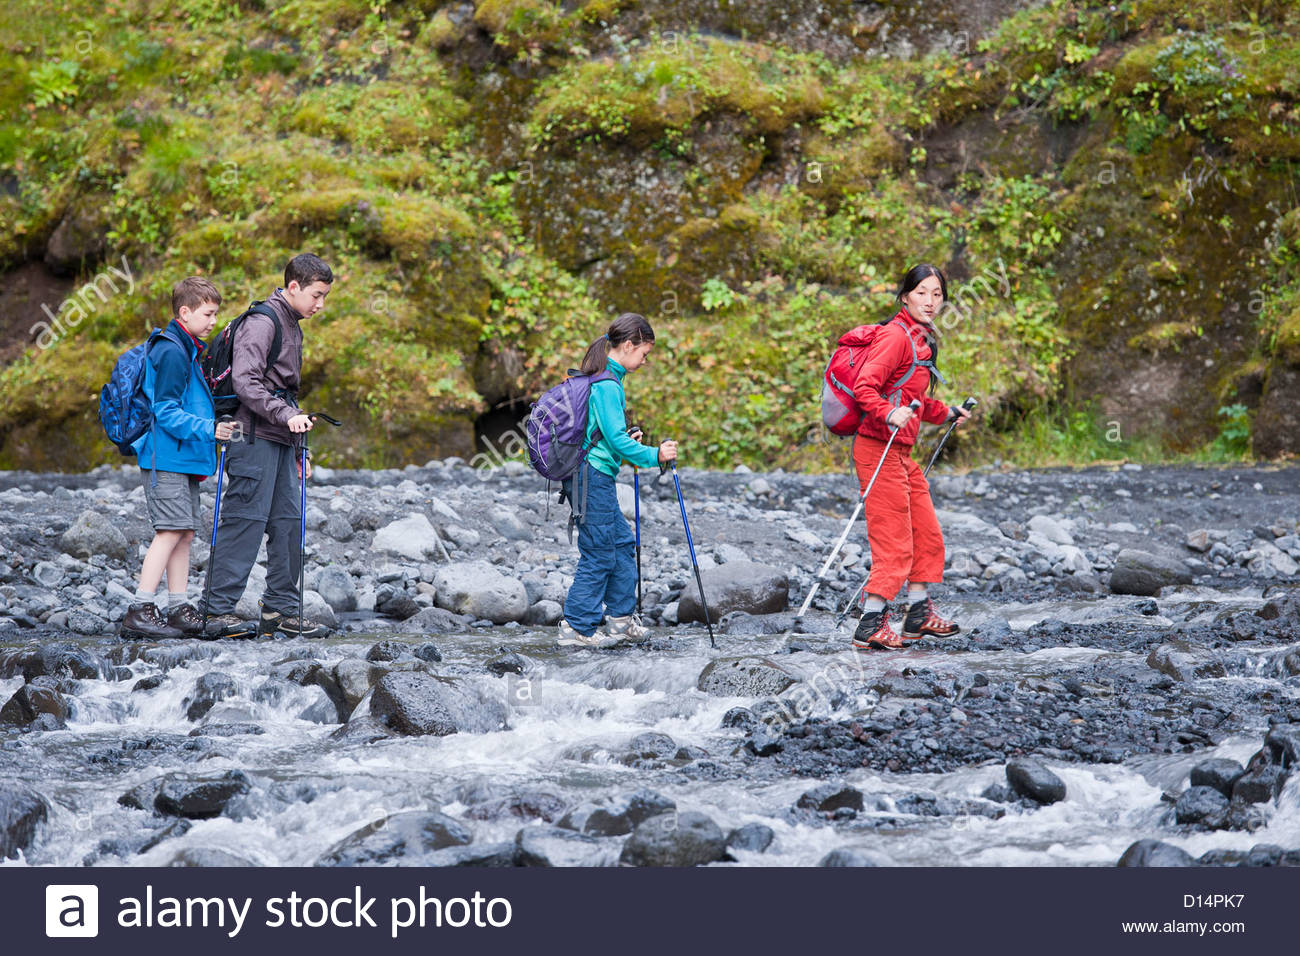 Family hiking rocky river together - Stock Image